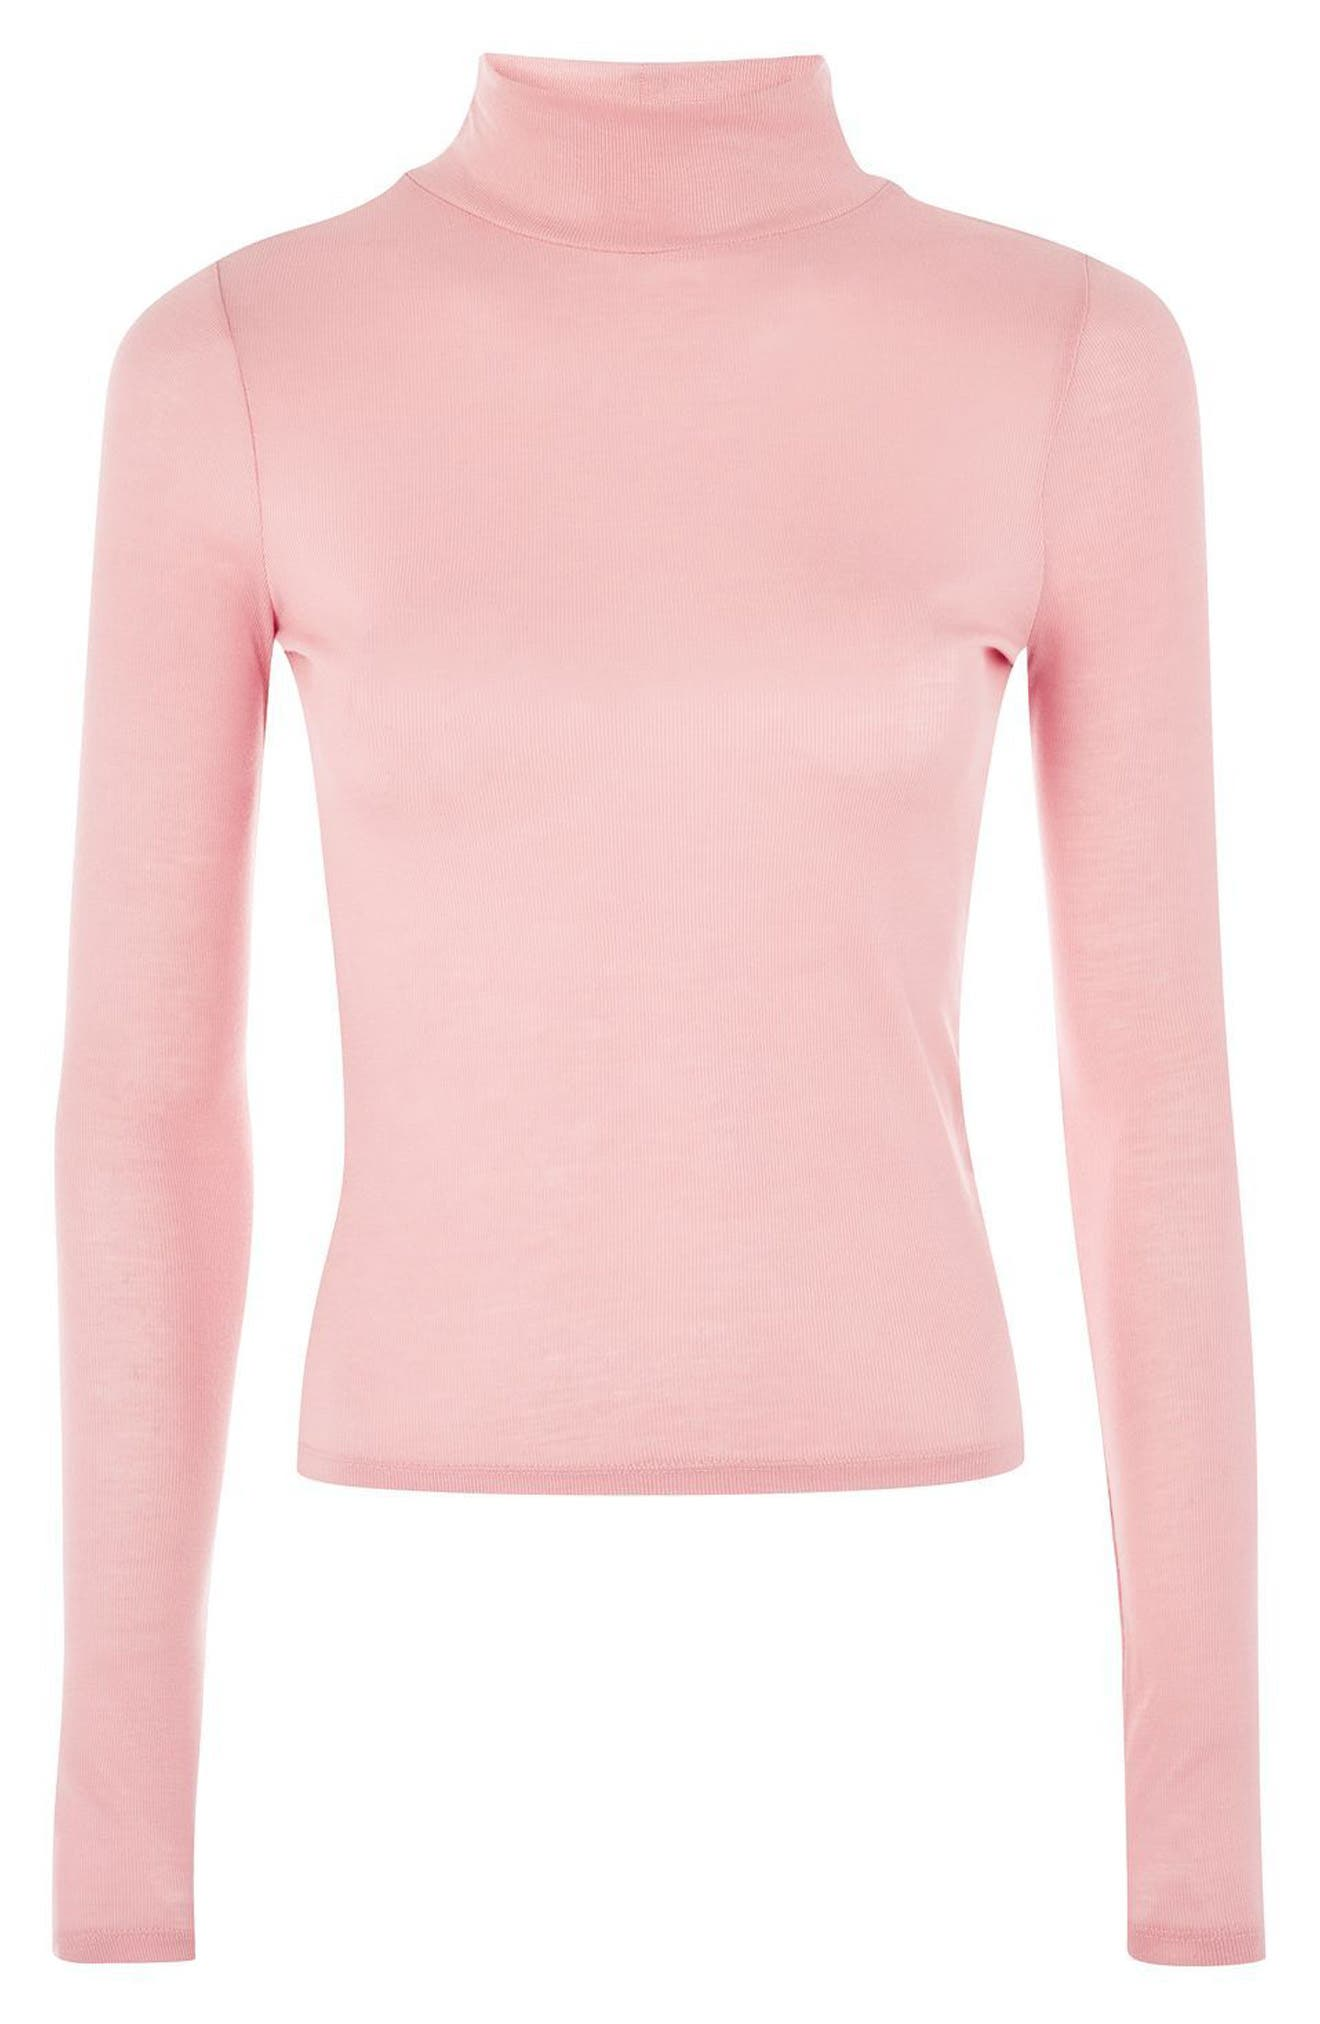 Ribbed Turtleneck Top,                             Alternate thumbnail 22, color,